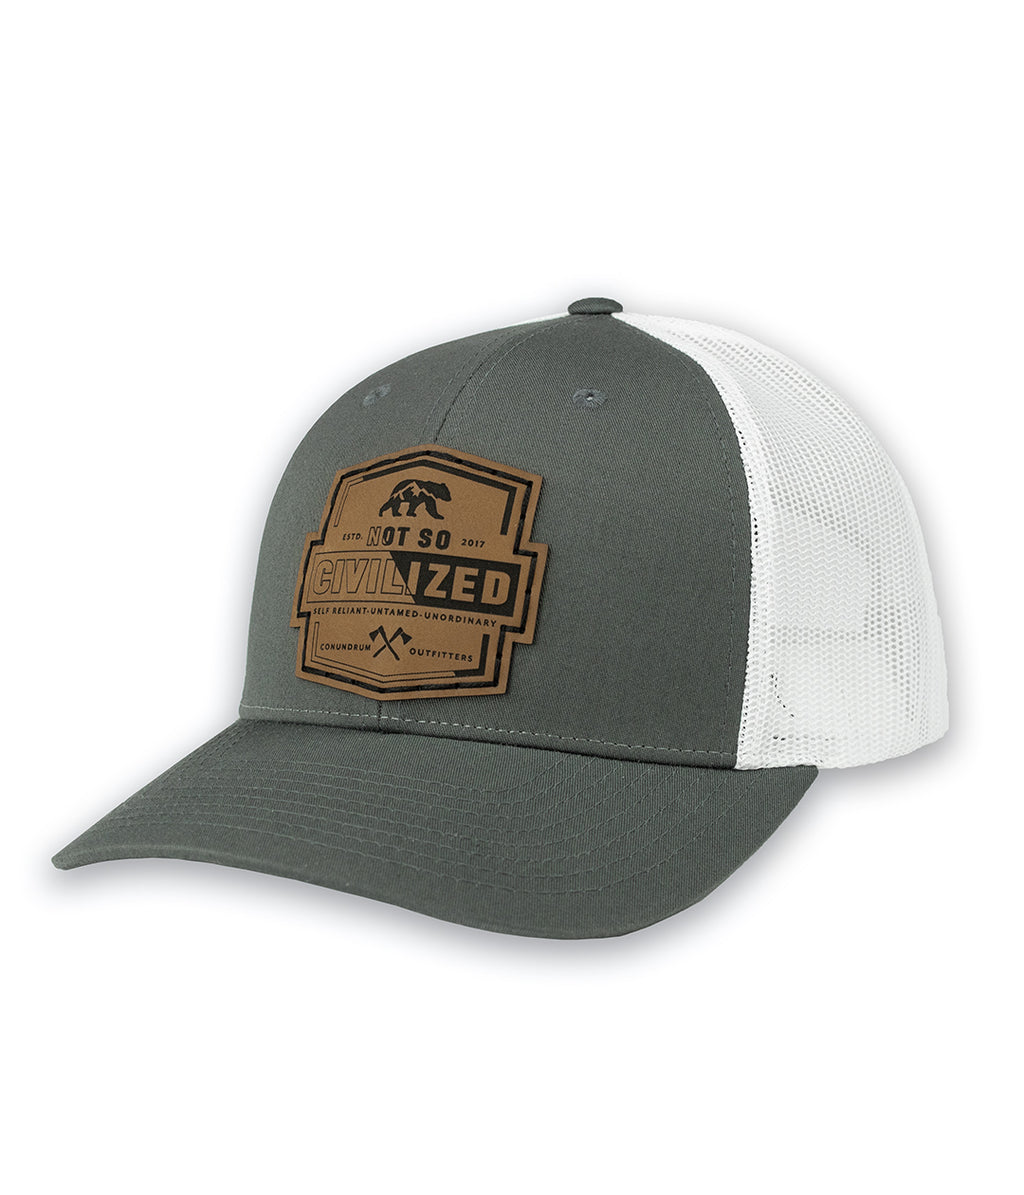 Uncivilized Trucker Hat - Charcoal